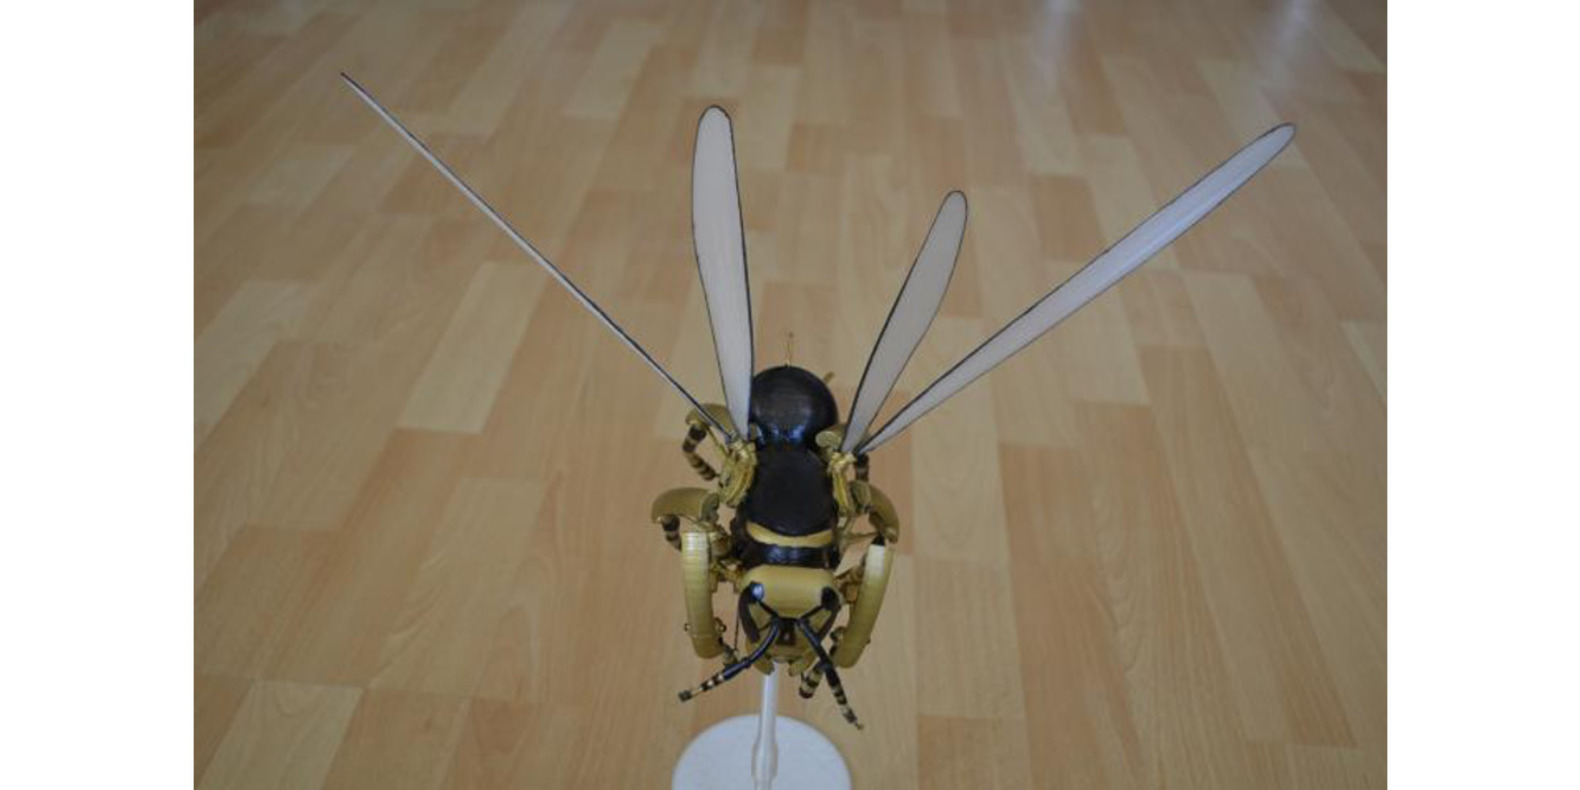 The 3D Printed Robotic Wasp